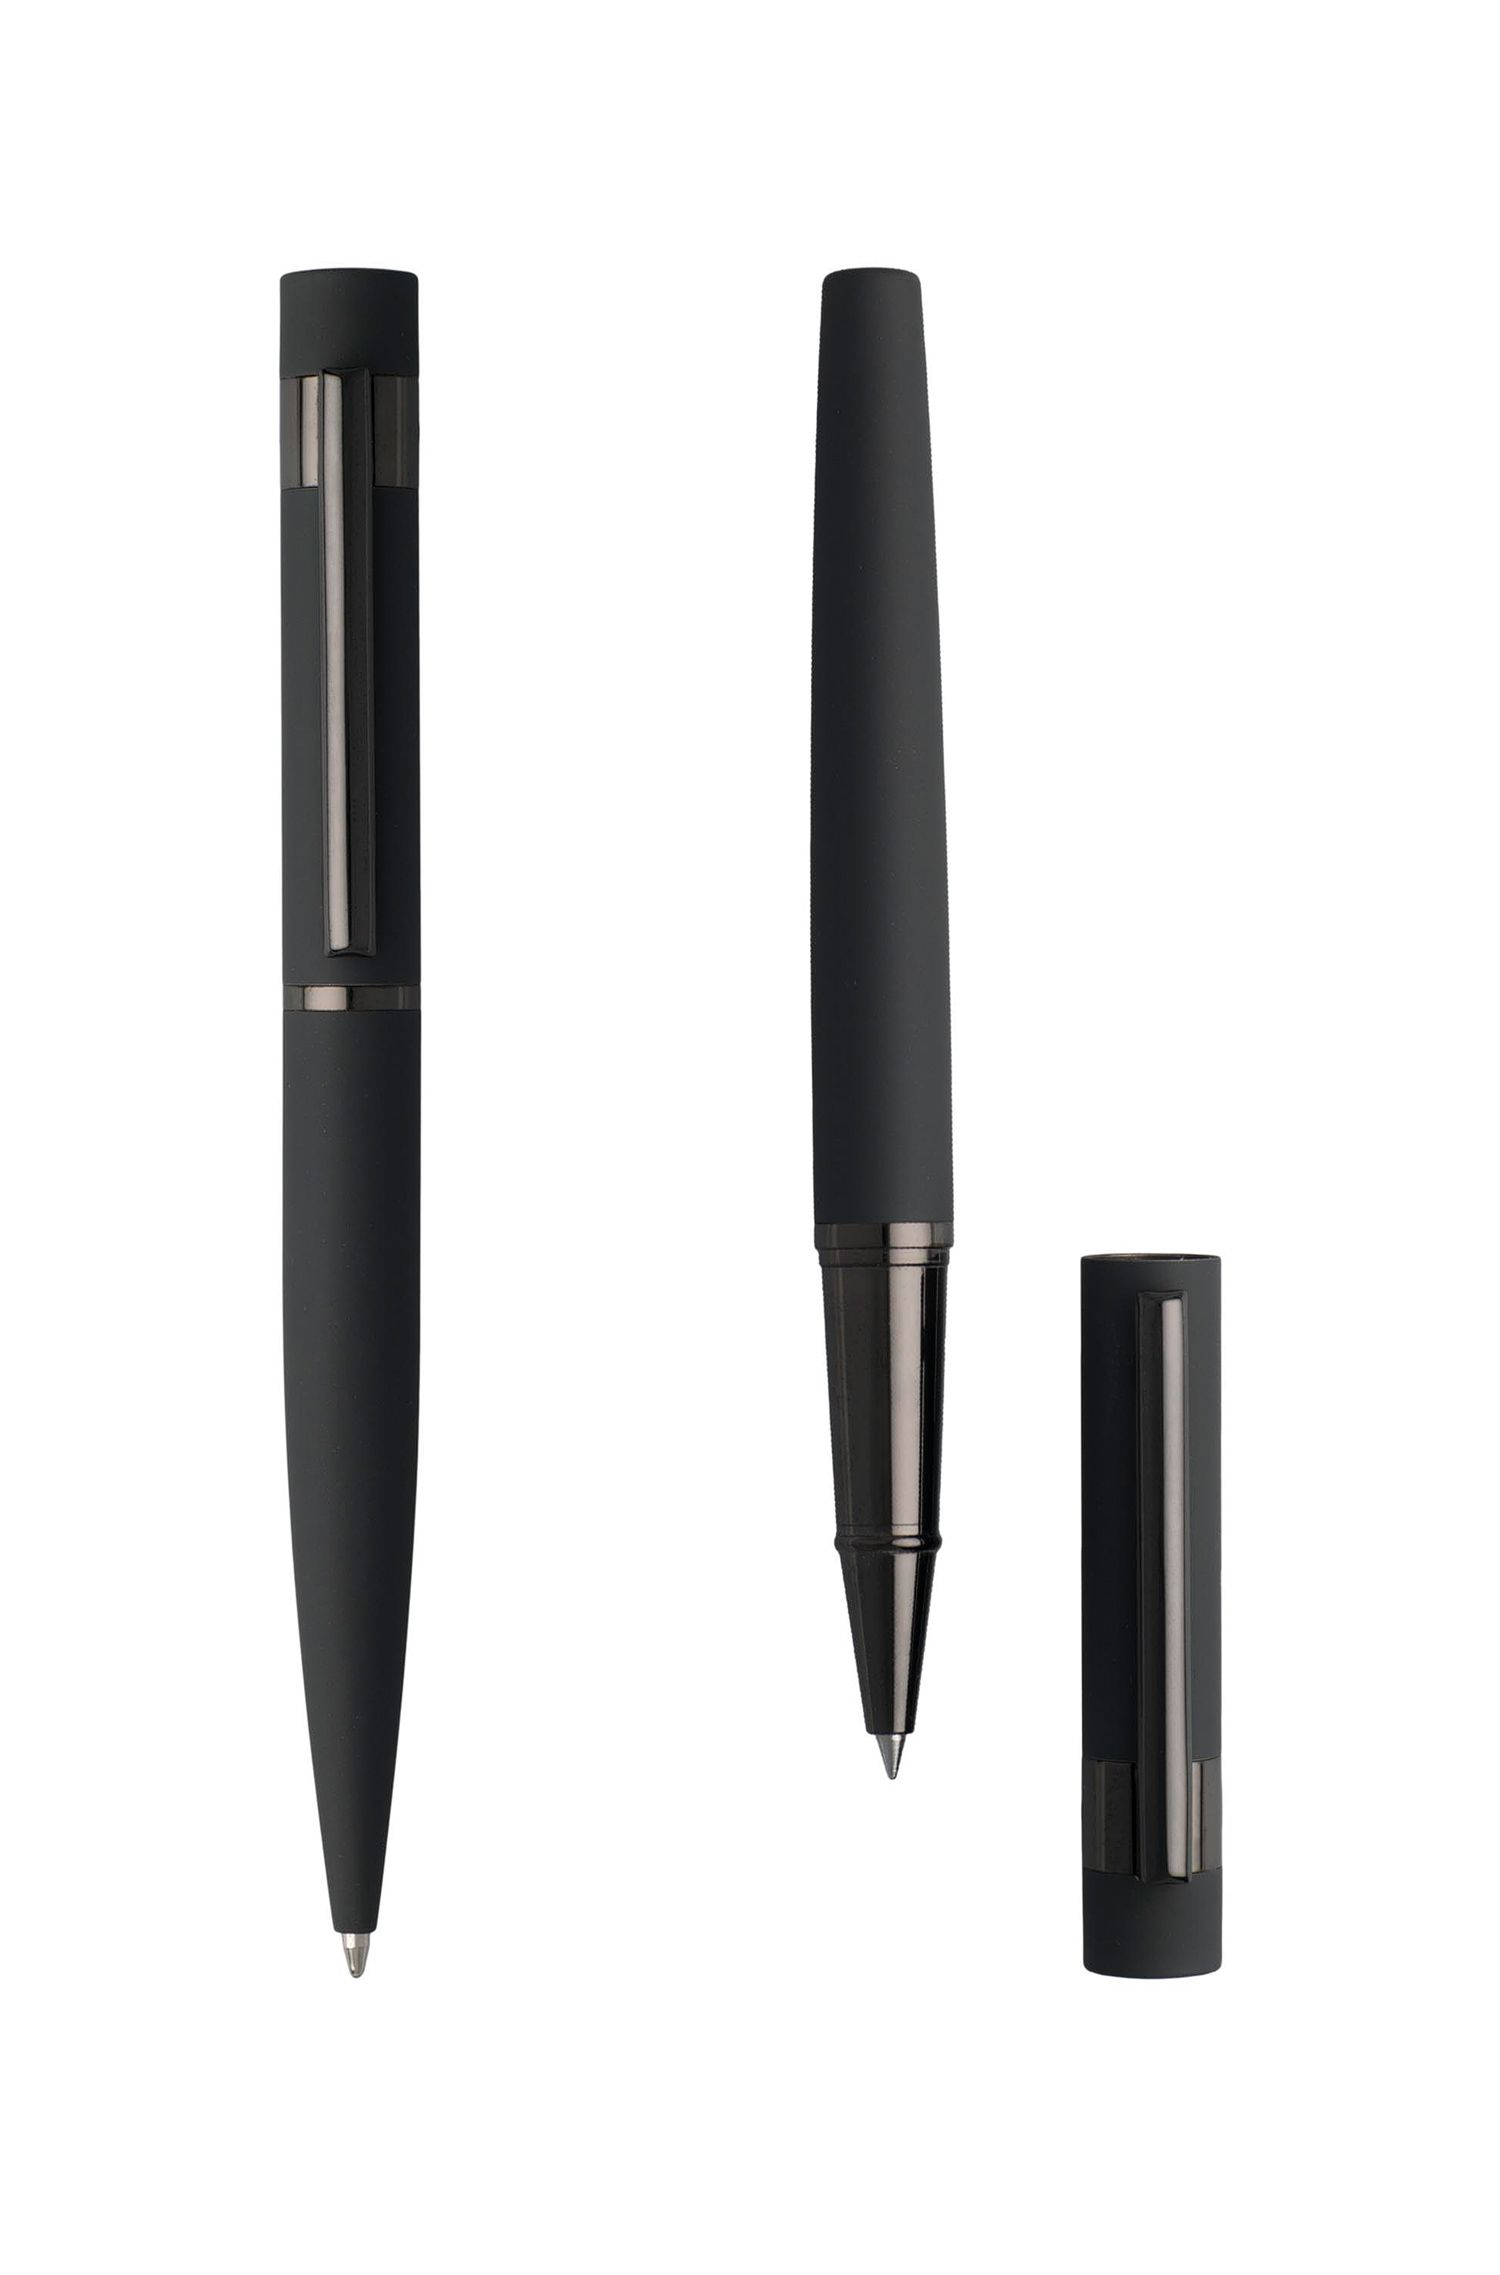 Set of rollerball and ballpoint pens with soft-touch rubber finish